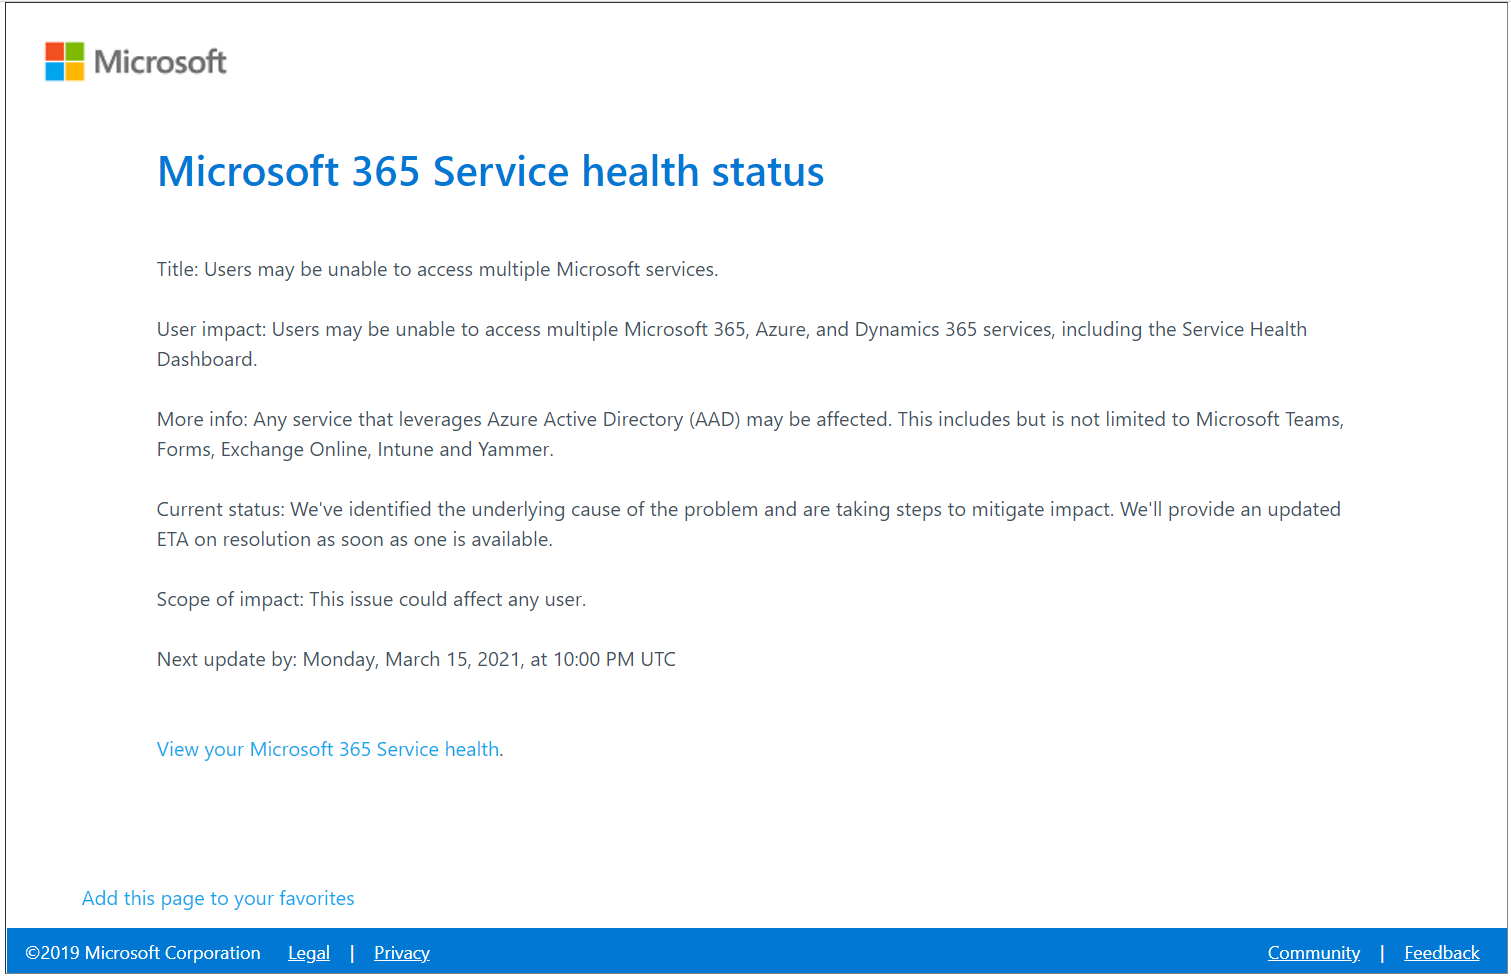 Help?! Office 365 = Down! Microsoft 365 Service Health Status